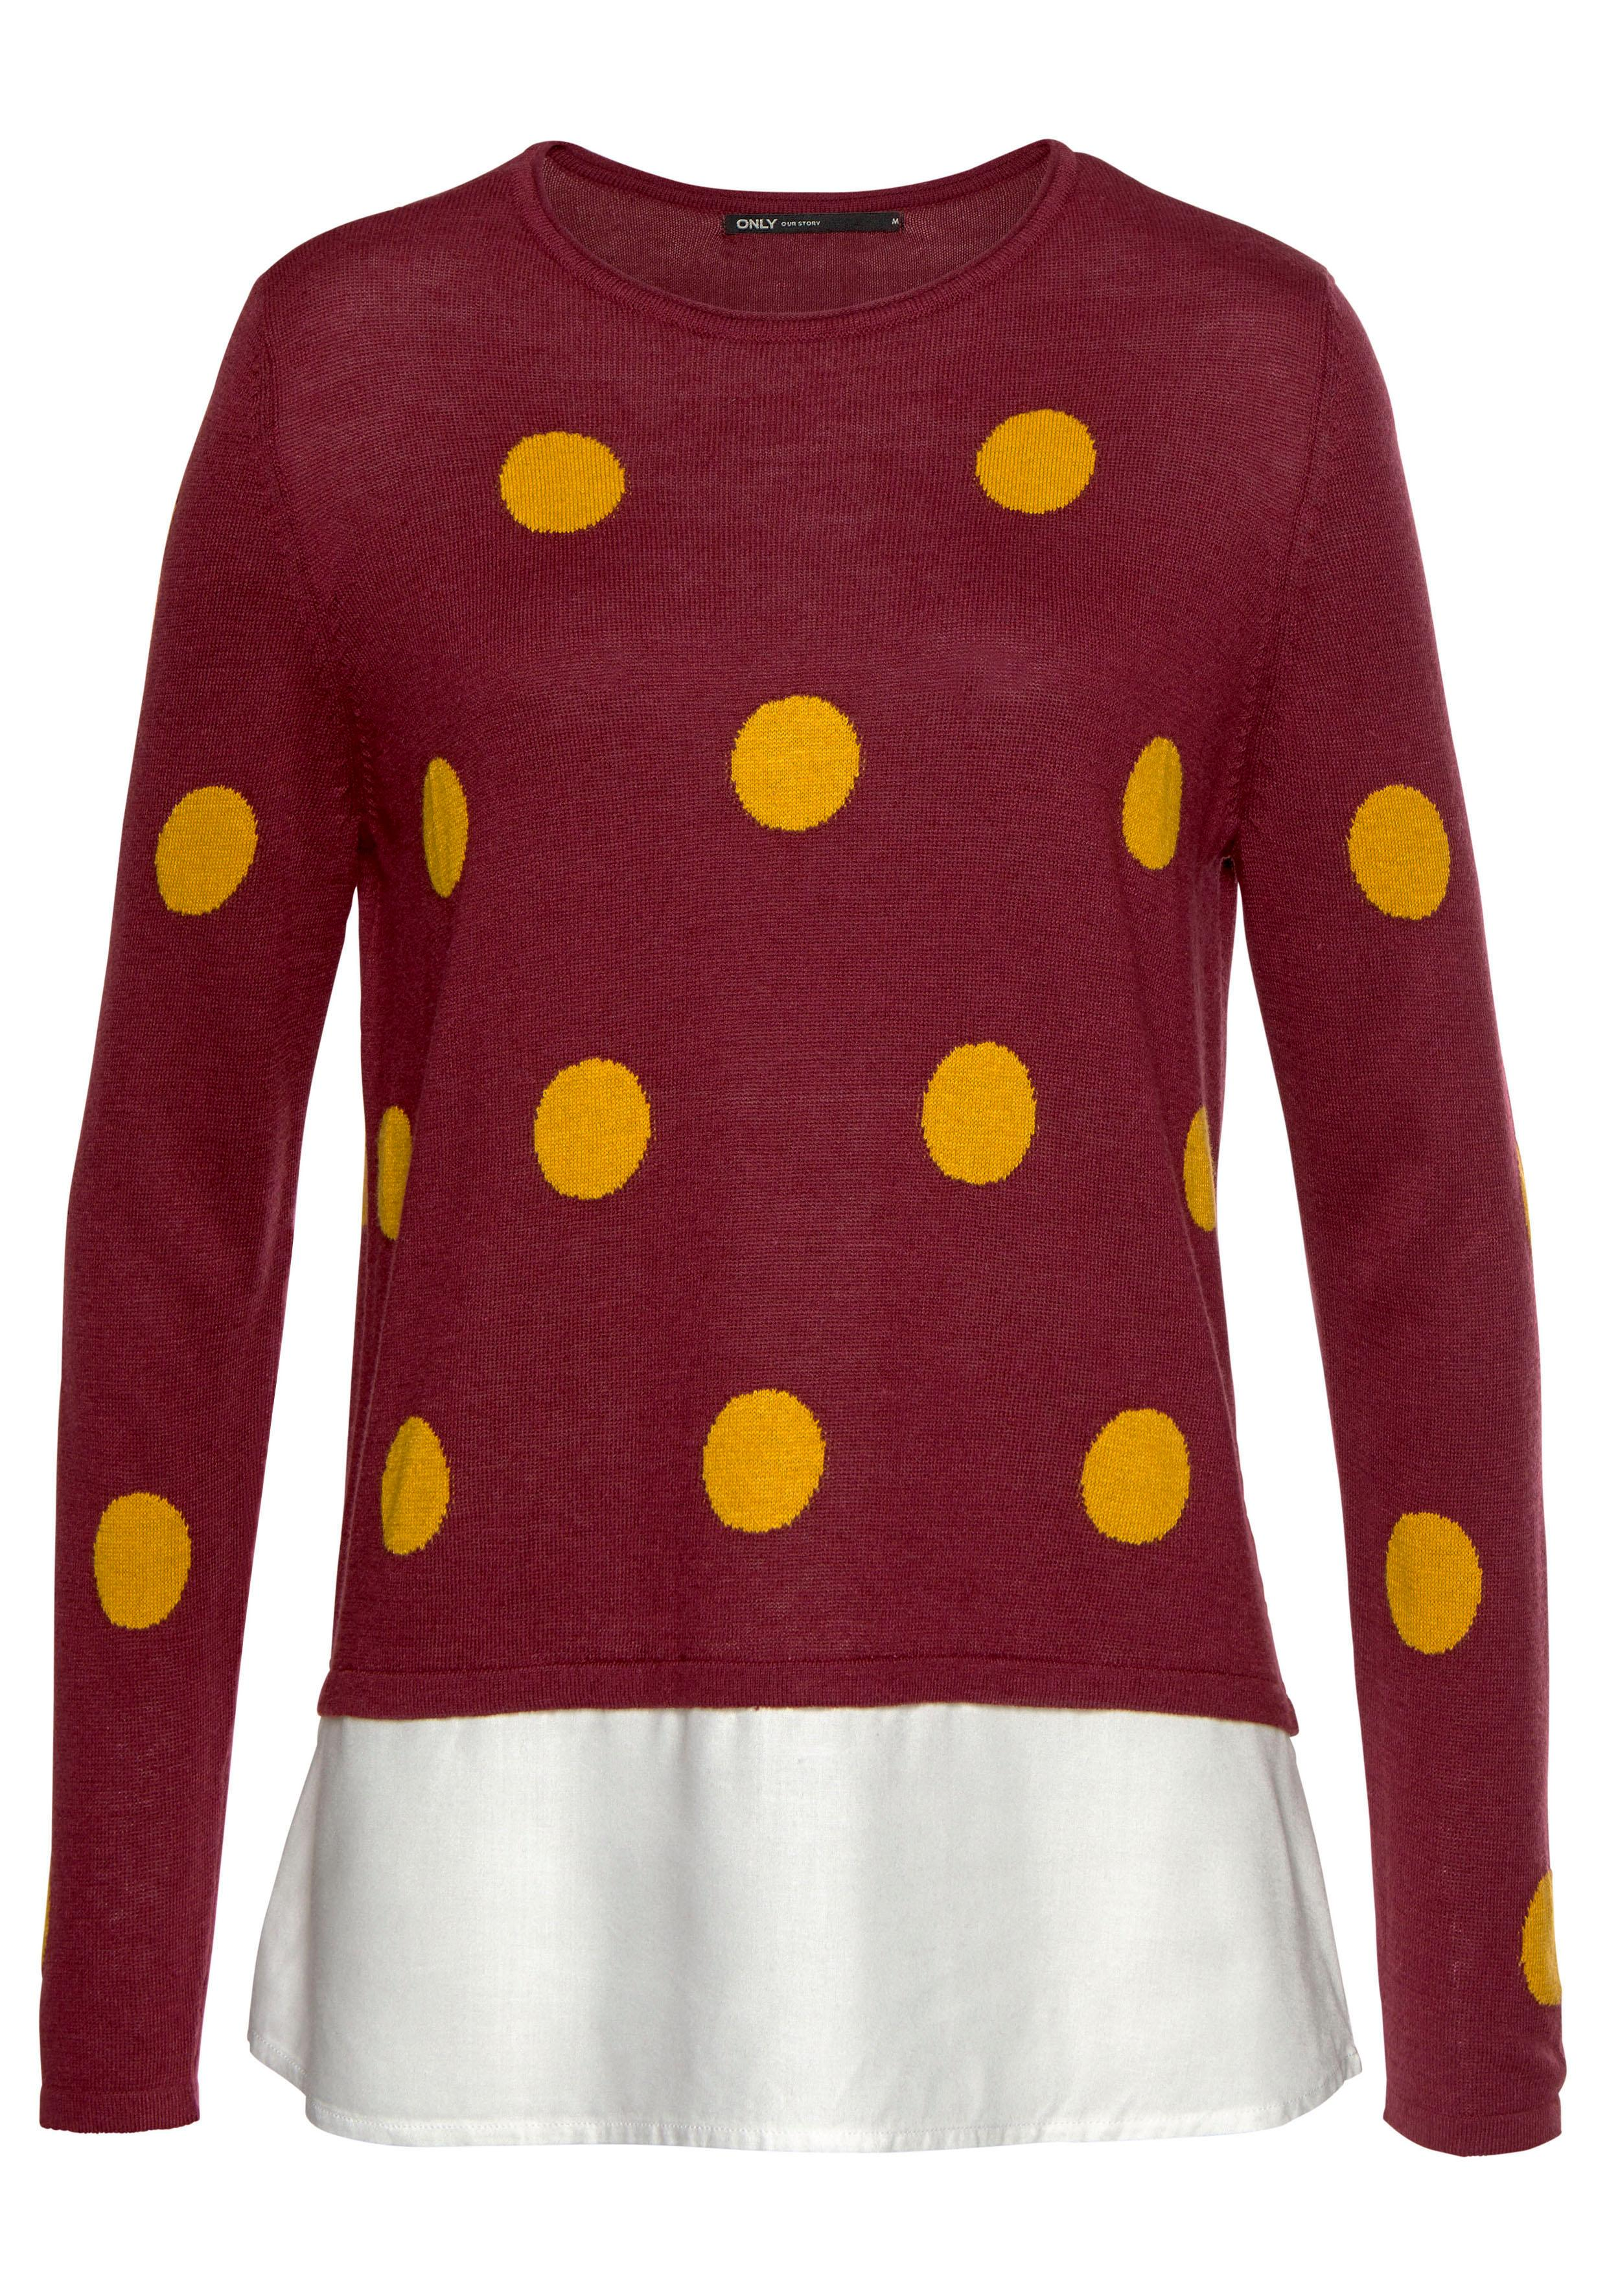 Only 2-in-1-Pullover AVILDE   Bekleidung > Pullover > 2-in-1 Pullover   Rot   Only